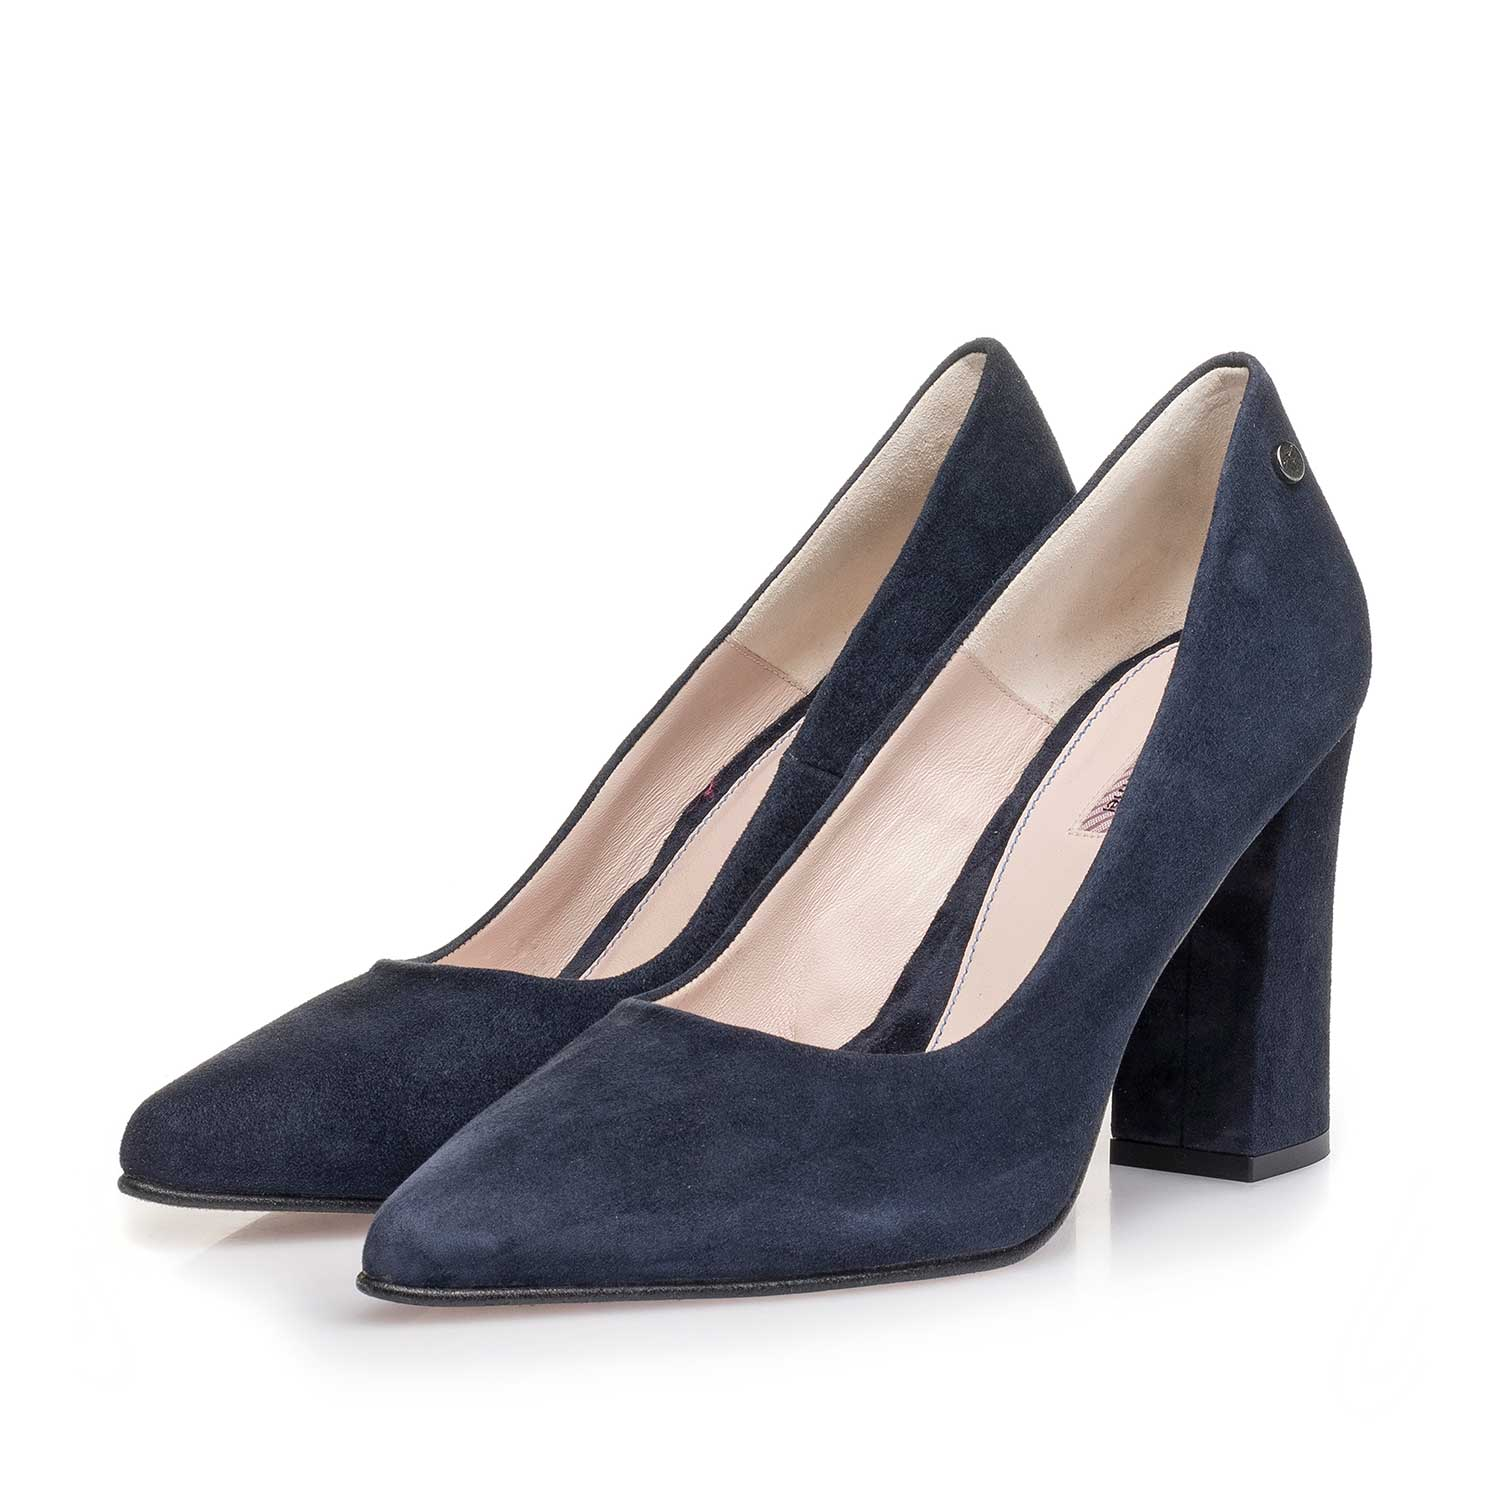 85519/10 - Dark blue suede leather pumps